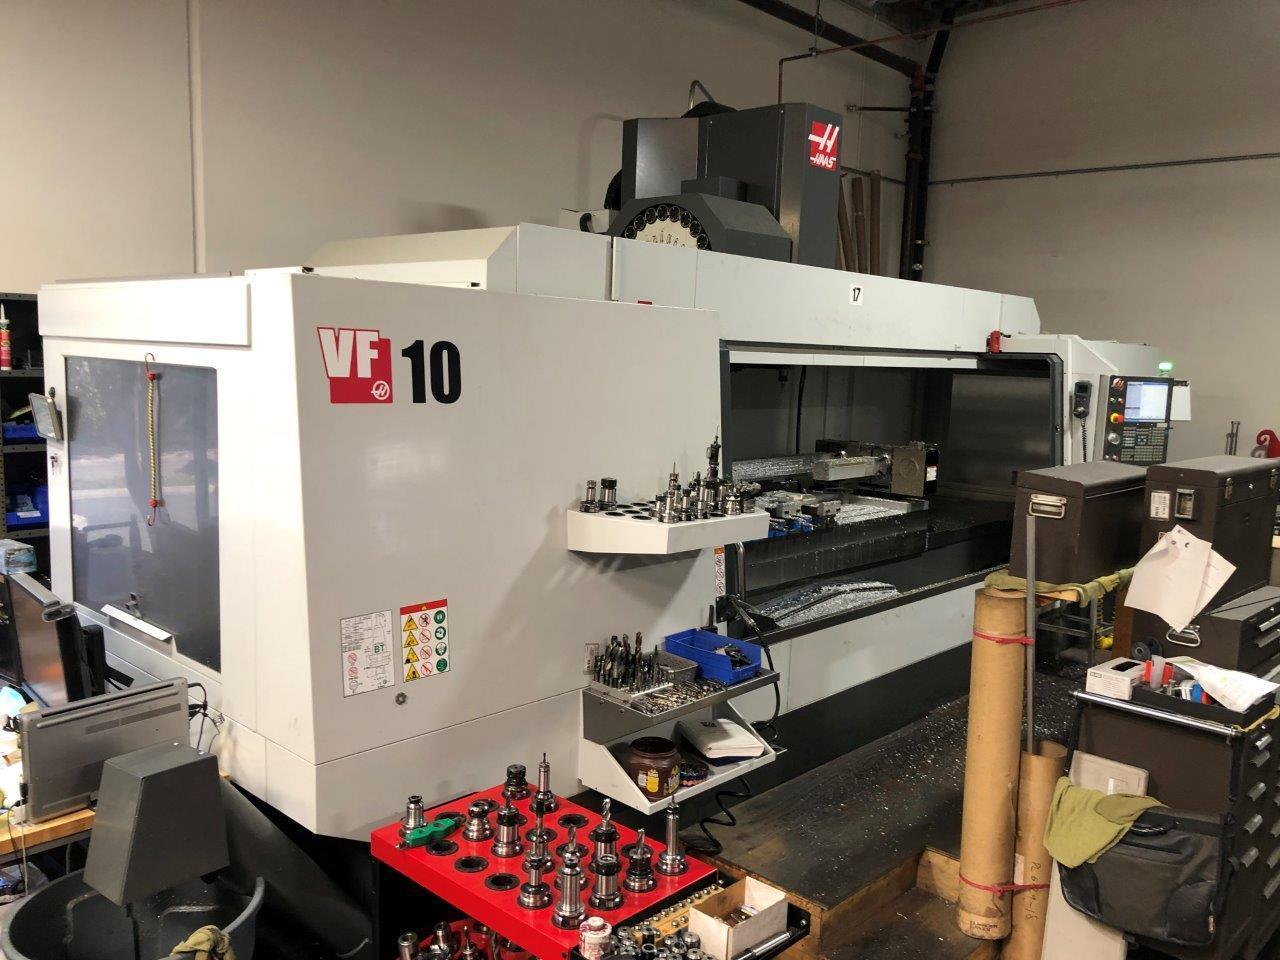 Haas VF-10/40 VMC 2017 with: Haas CNC Control, 4th Axis Drive and Wiring, Haas HRT210-2, 30+1 High Speed Mount Tool Changer, Programmable Coolant and Nozzle, Minimum Quantity Lubrication, Remote Jog Handle, Coolant Tank, and Chip Auger.